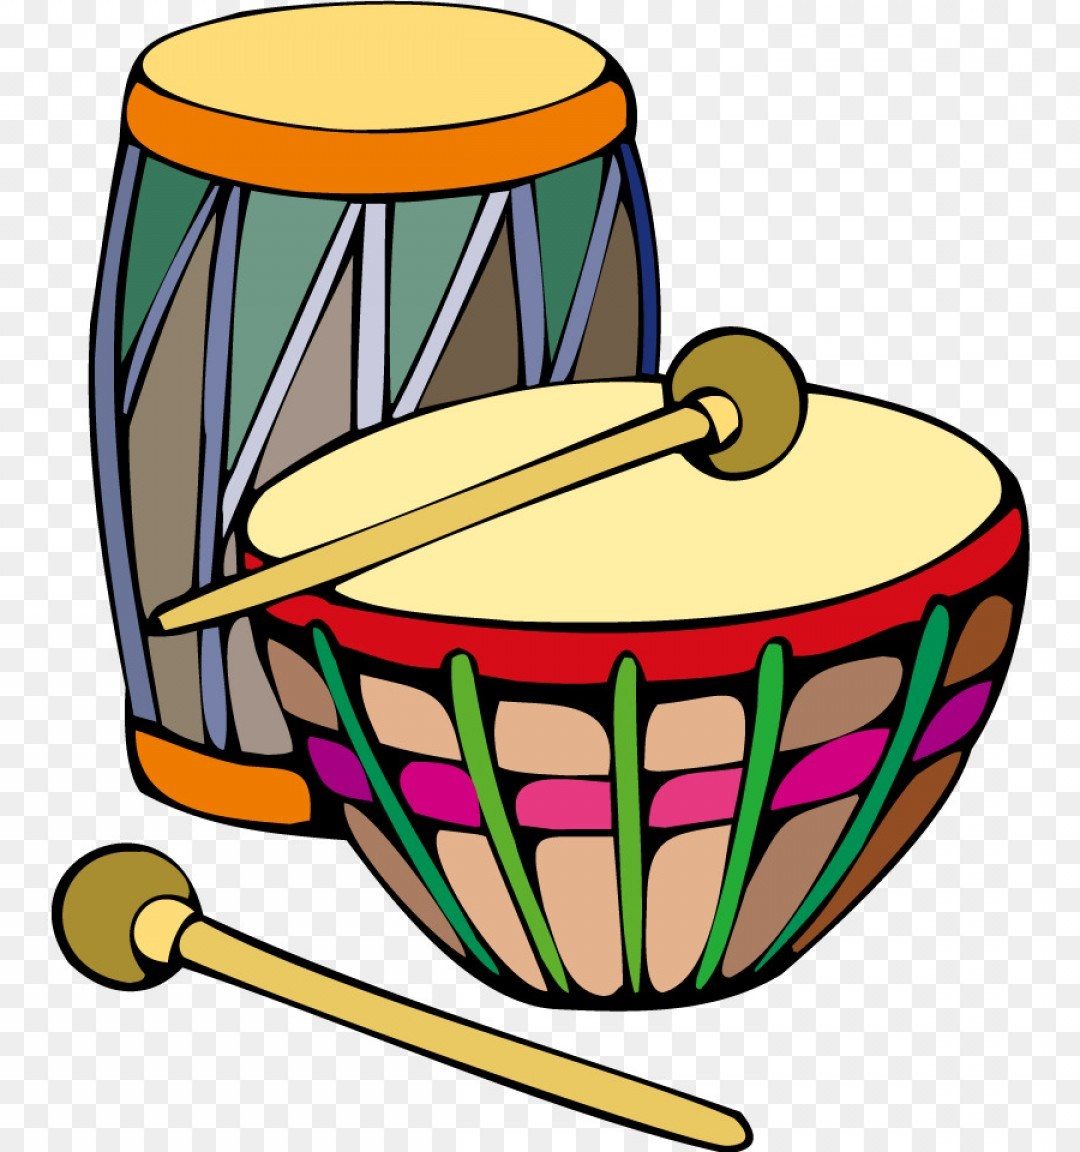 Dhol clipart jpg library library Dhol clipart png 2 » Clipart Portal jpg library library